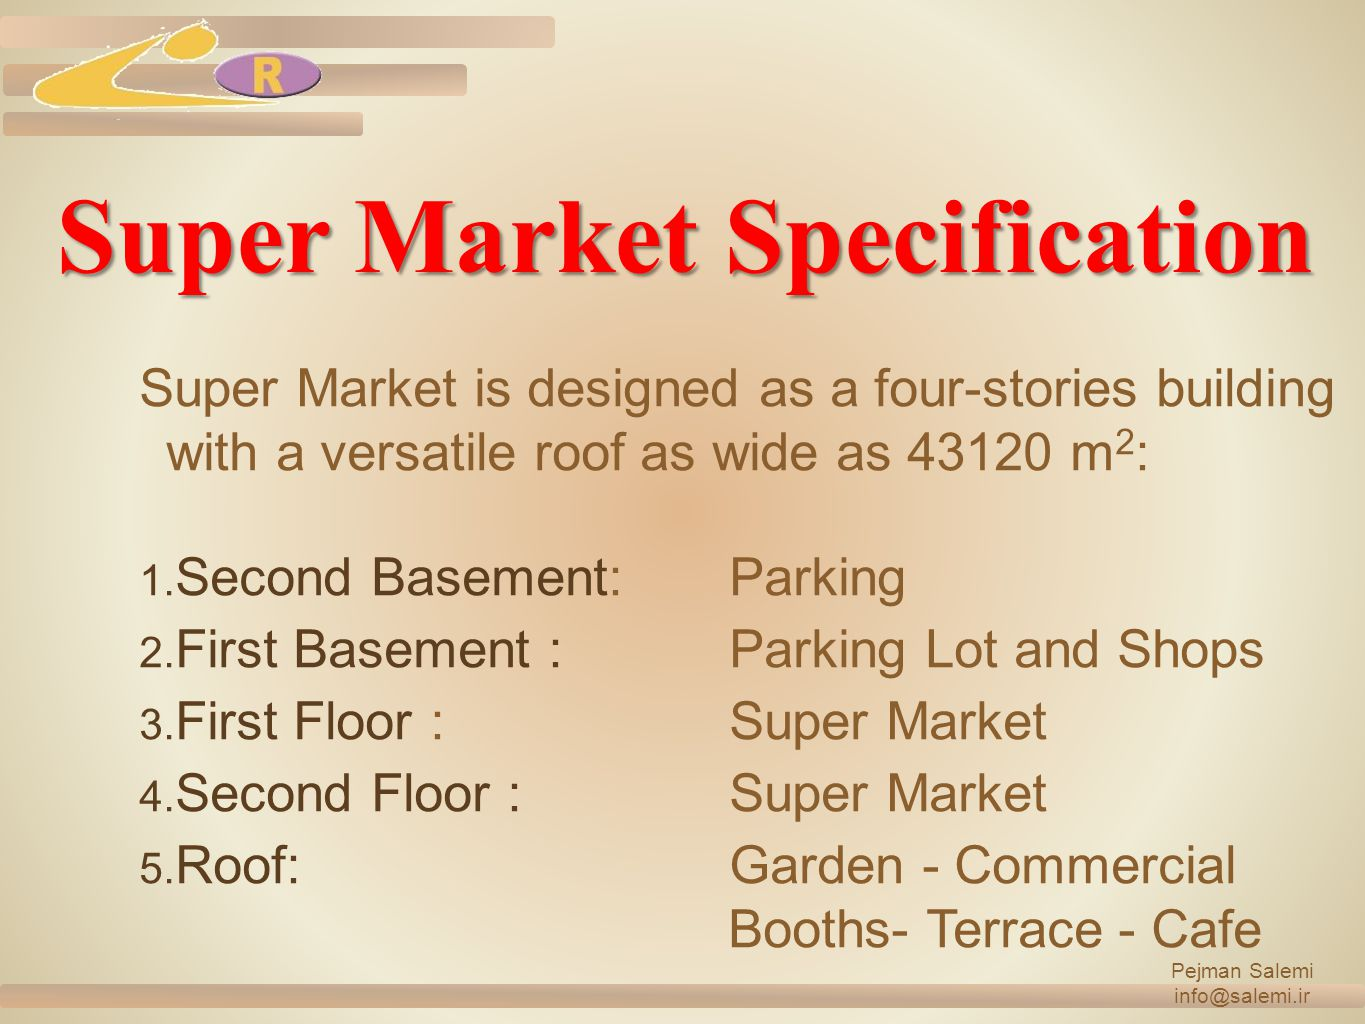 Super Market Specification Super Market is designed as a four-stories building with a versatile roof as wide as 43120 m 2 : 1. Second Basement:Parking